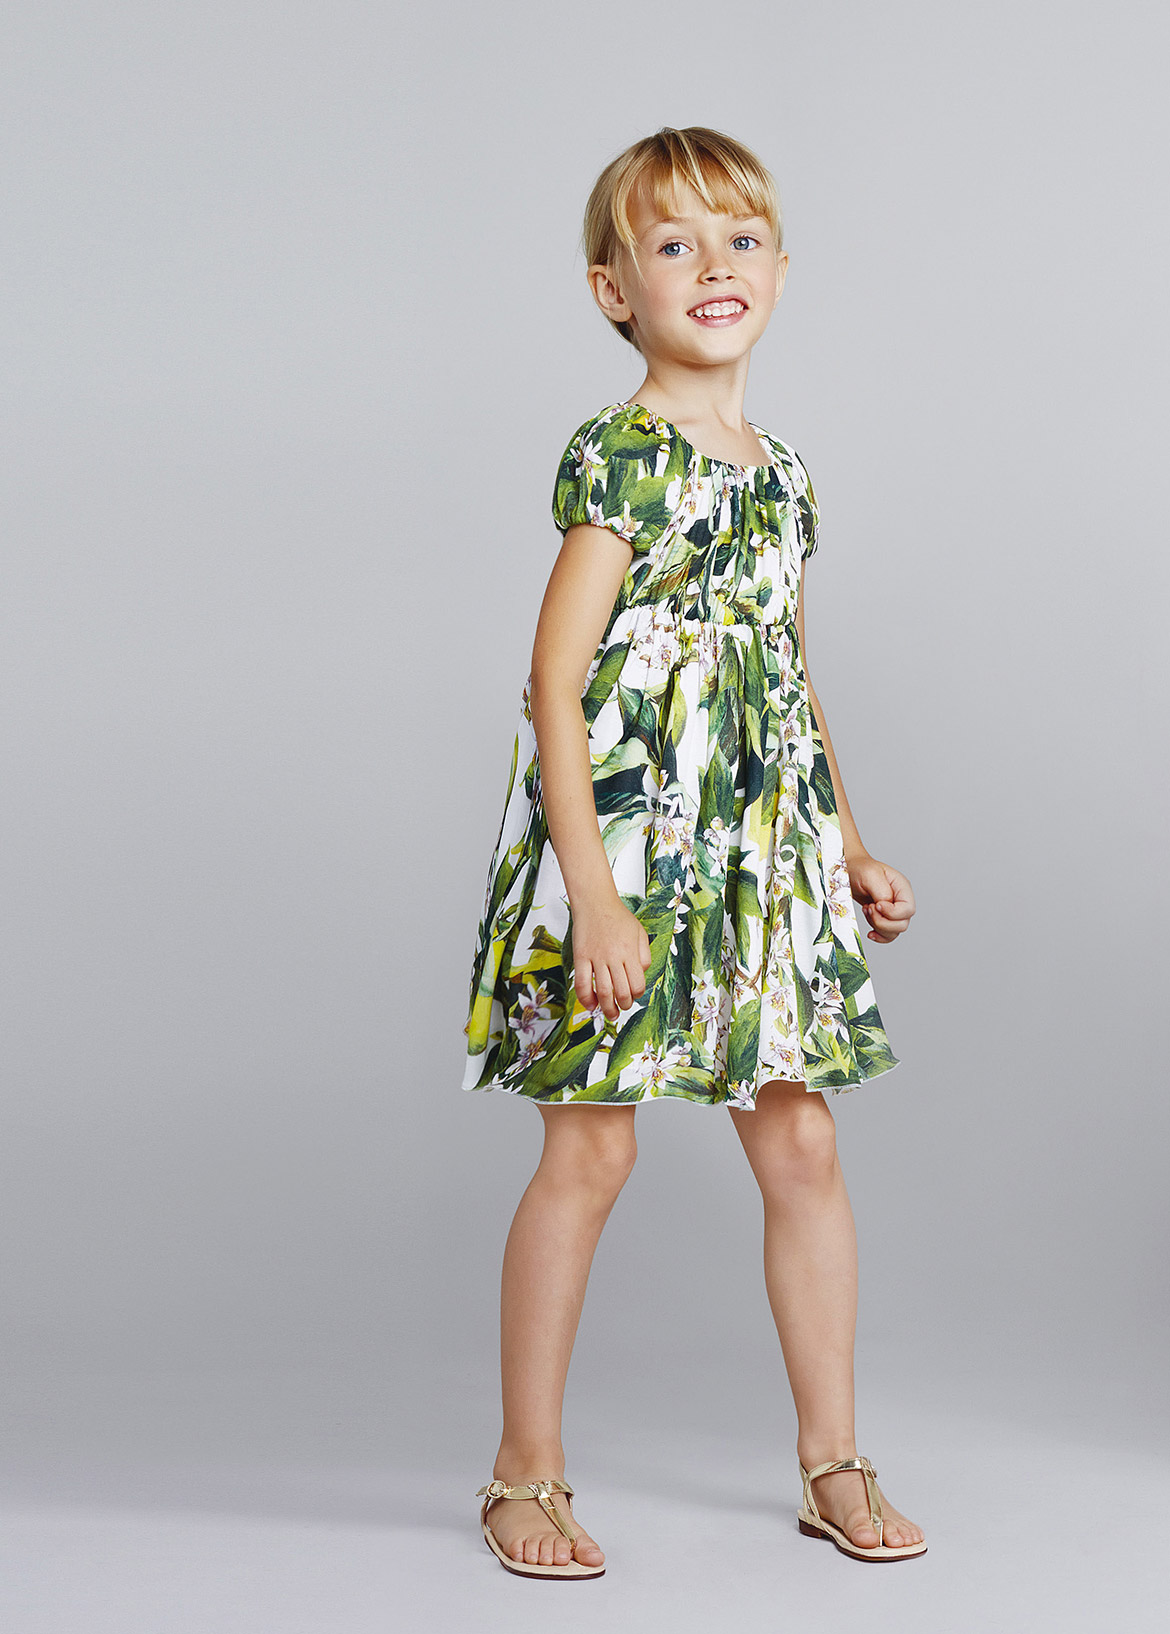 dolce-and-gabbana-ss-2014-child-collection (18)